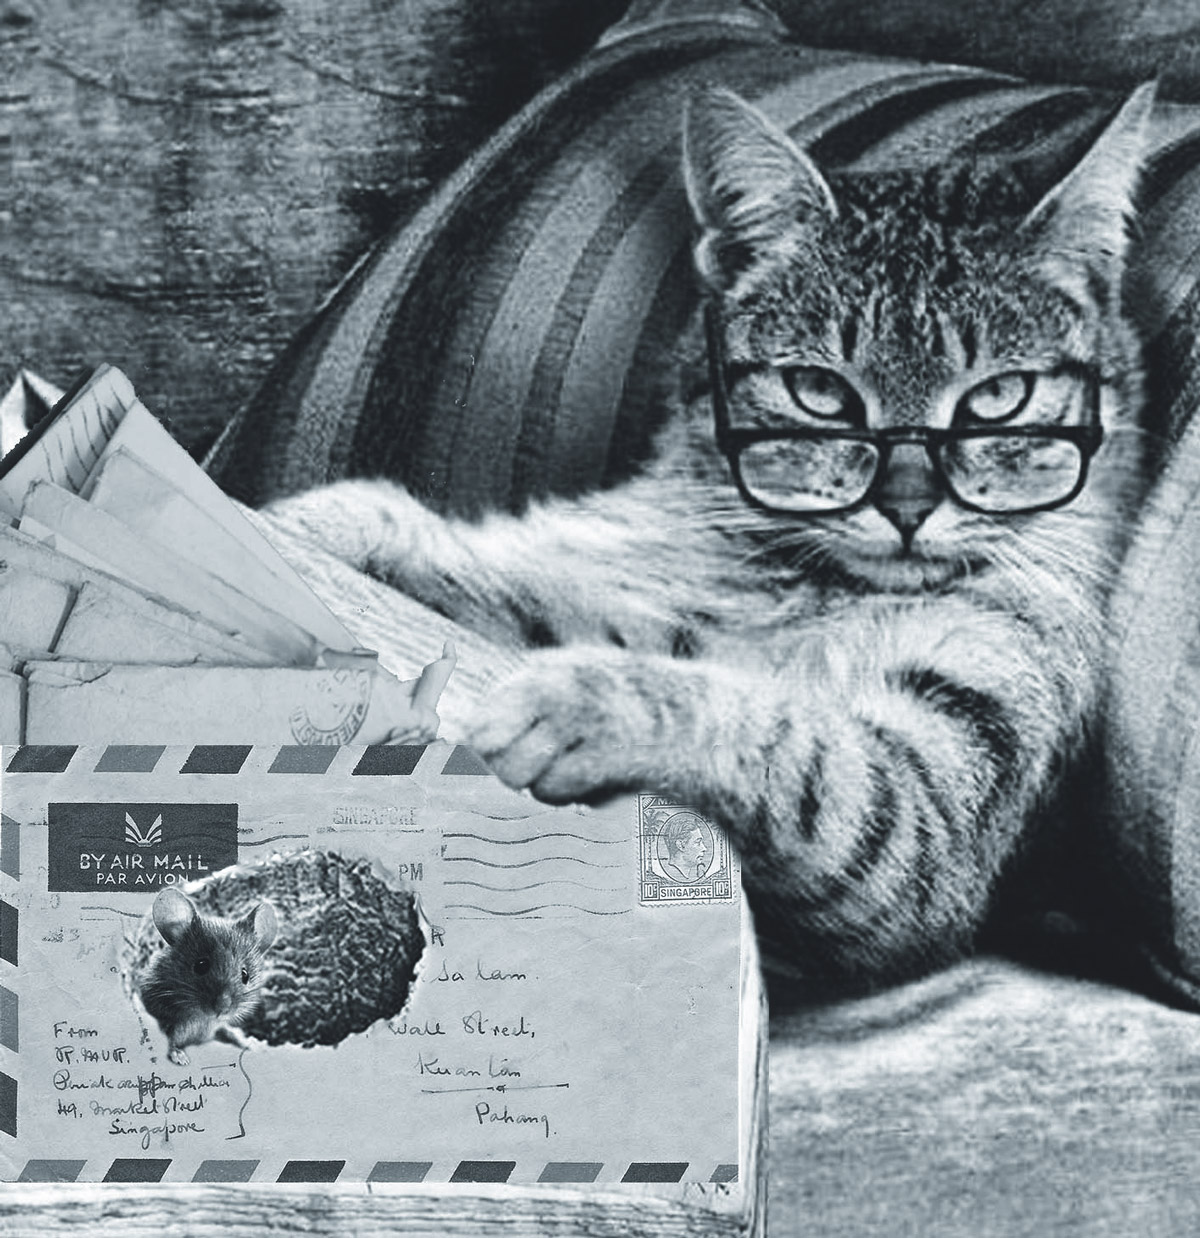 A seafaring feline channelling a young Michael Caine reads the paper while a cheeky mouse eats holes in his mail.